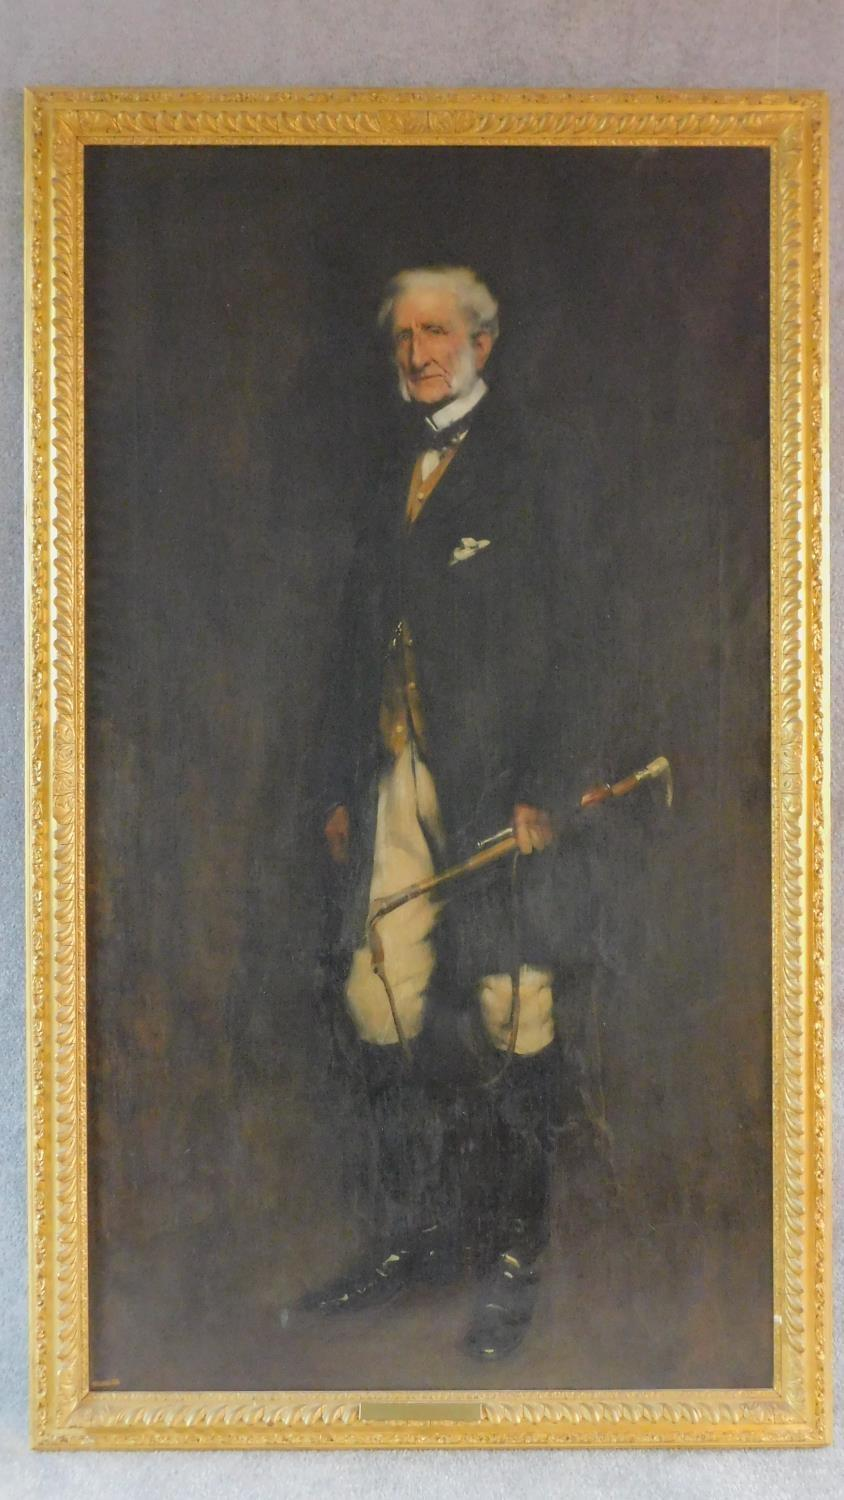 """SIR JAMES JEBUSA SHANNON R.A., R.B.A., R.H.A. 1862-1923 Henry Vigne, """"Master of the Epping Forest"""